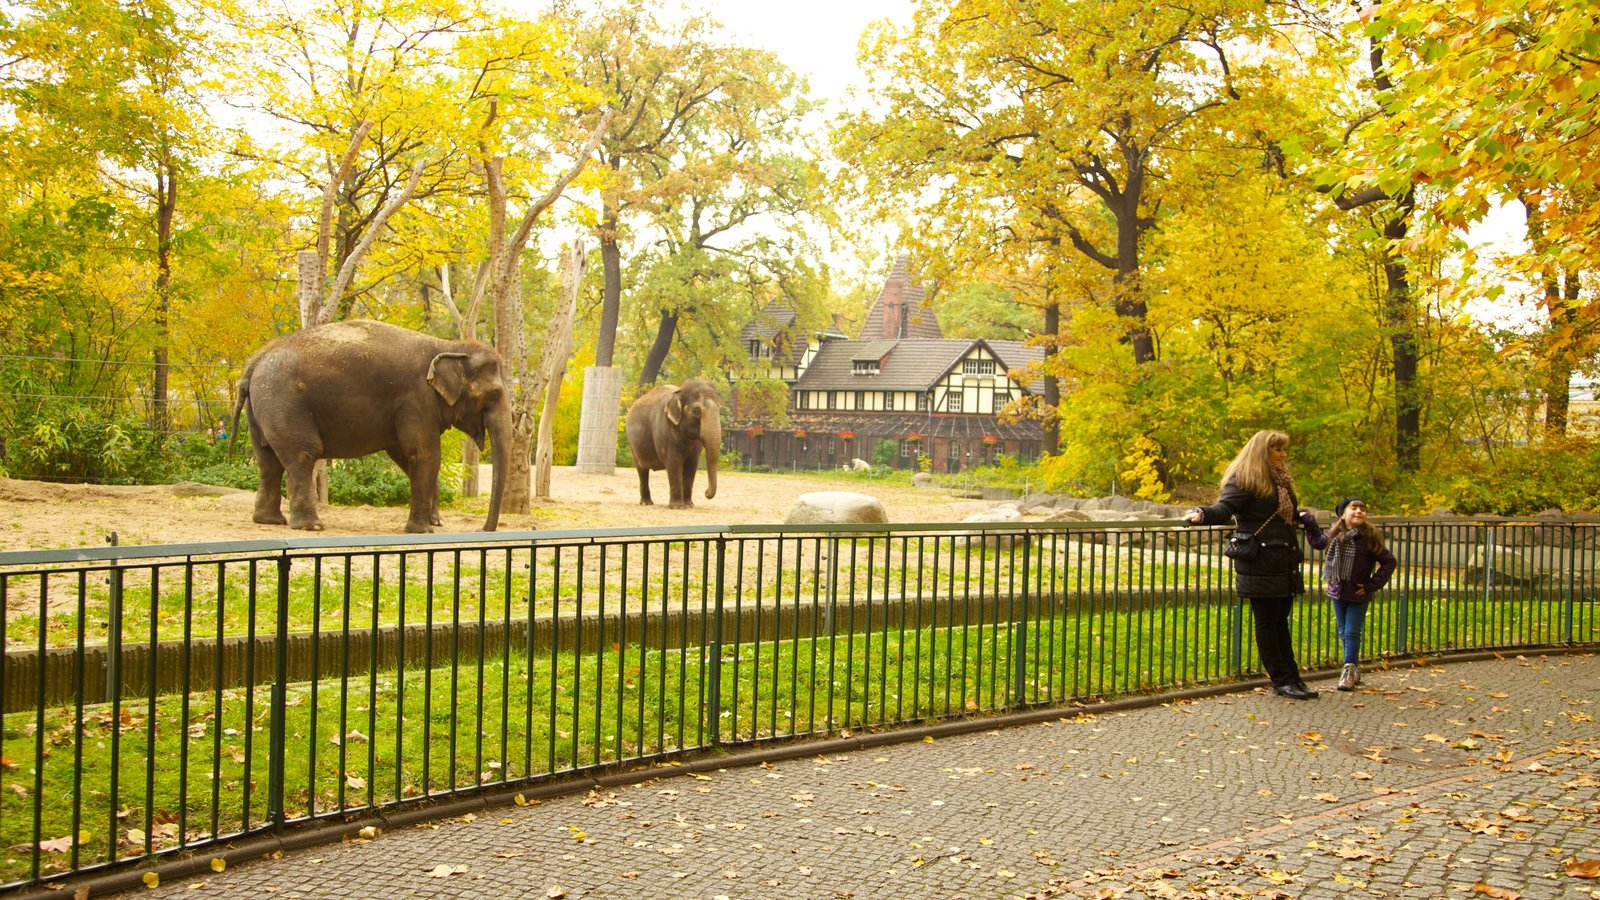 Berlin Zoo which includes land animals, autumn leaves and zoo animals